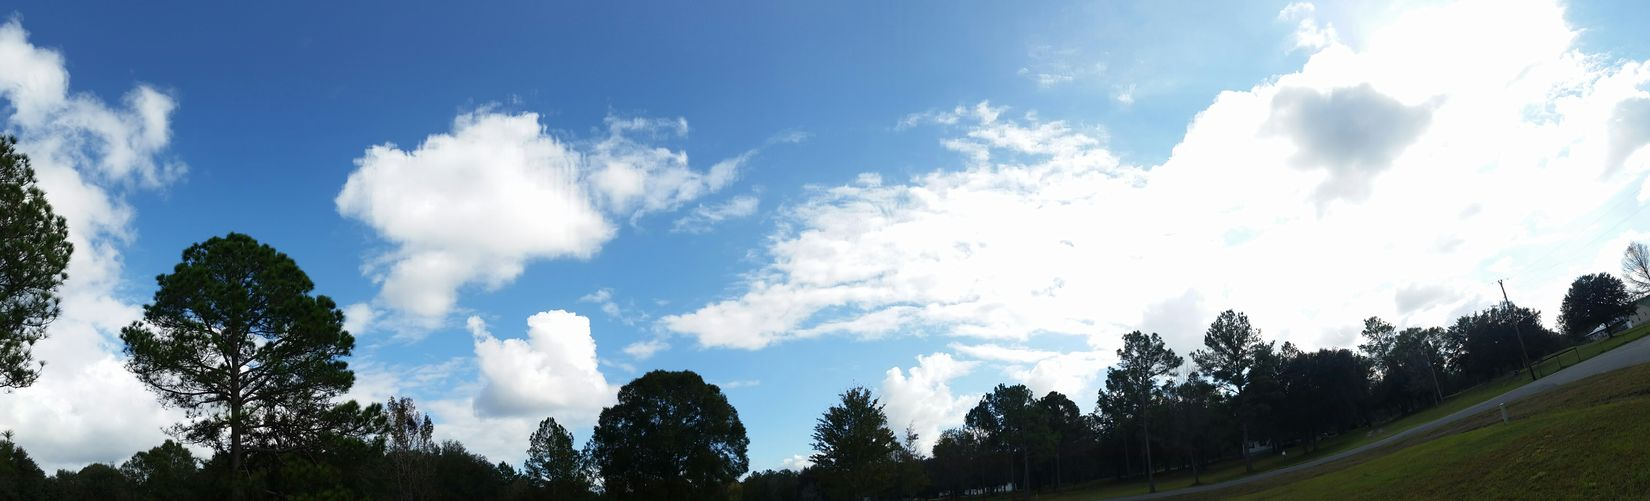 Florida Sky Clouds Outdoor Photography Hobbyphotography Taking Photos November 2015 Samsung Galaxy S5 Phoneography Sky Panorama View Hello World Landscape Tree Silhouette Silhouette